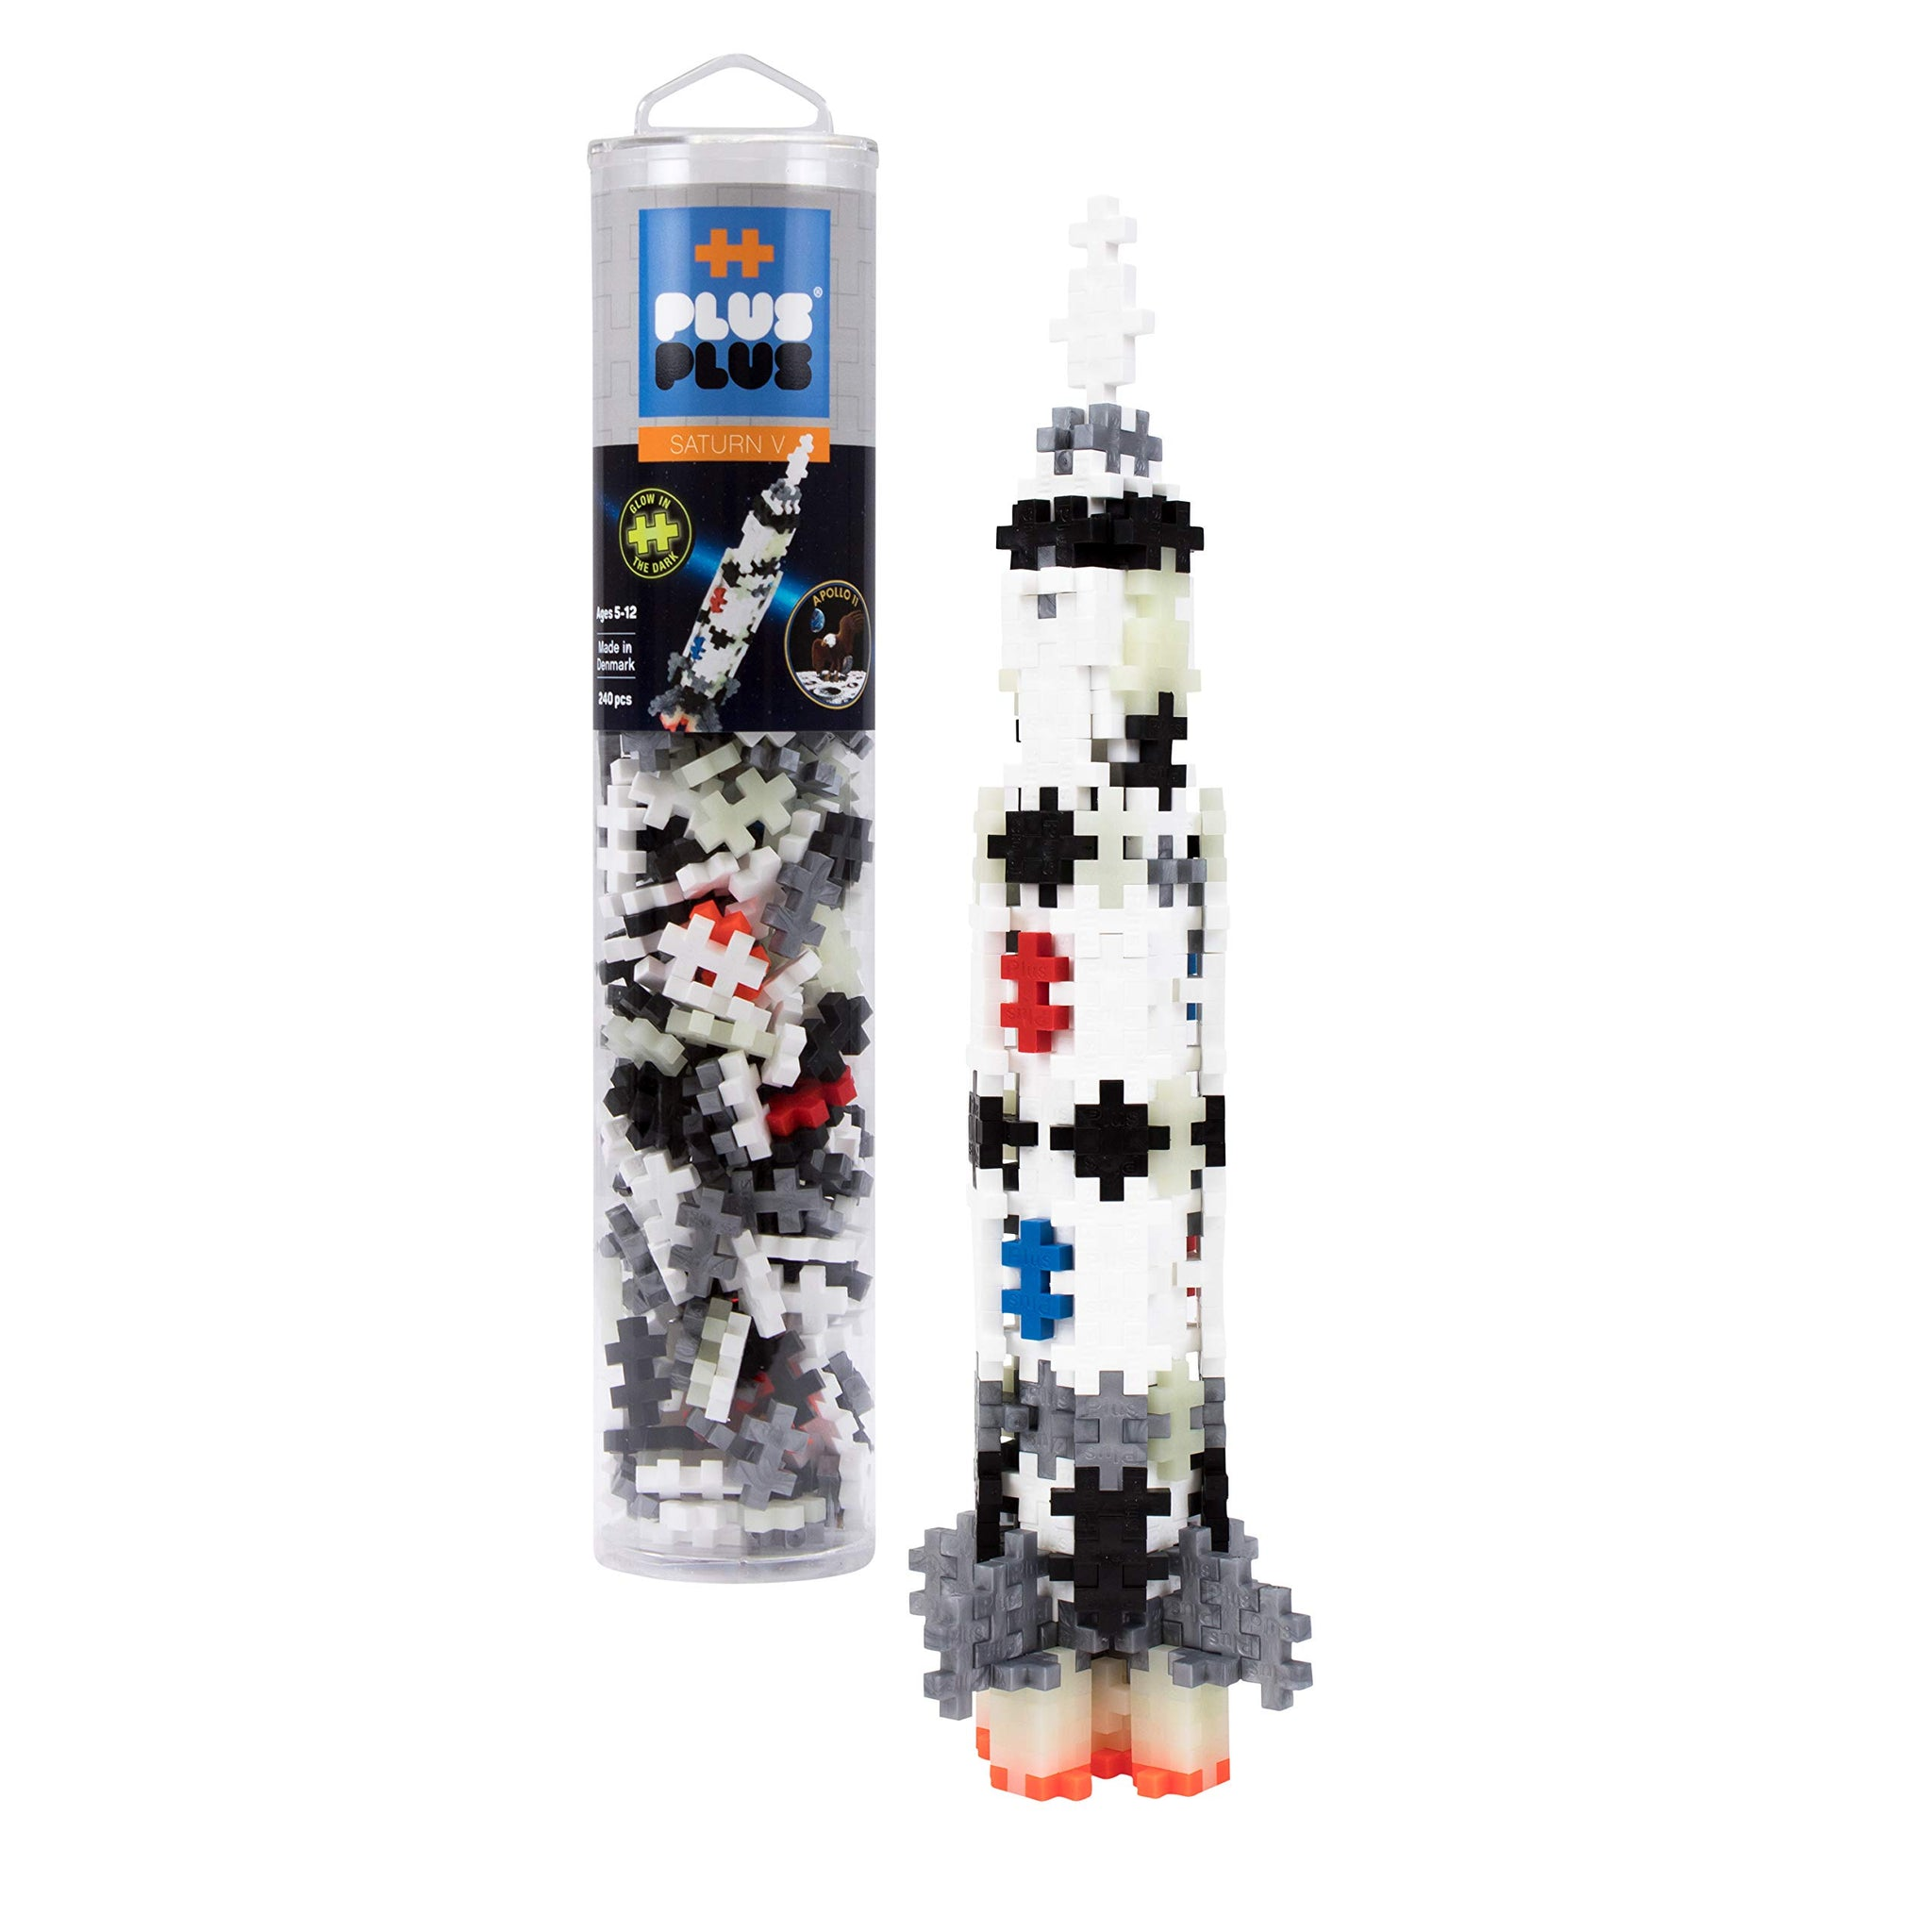 PLUS PLUS - 240 Piece - Saturn V Rocket